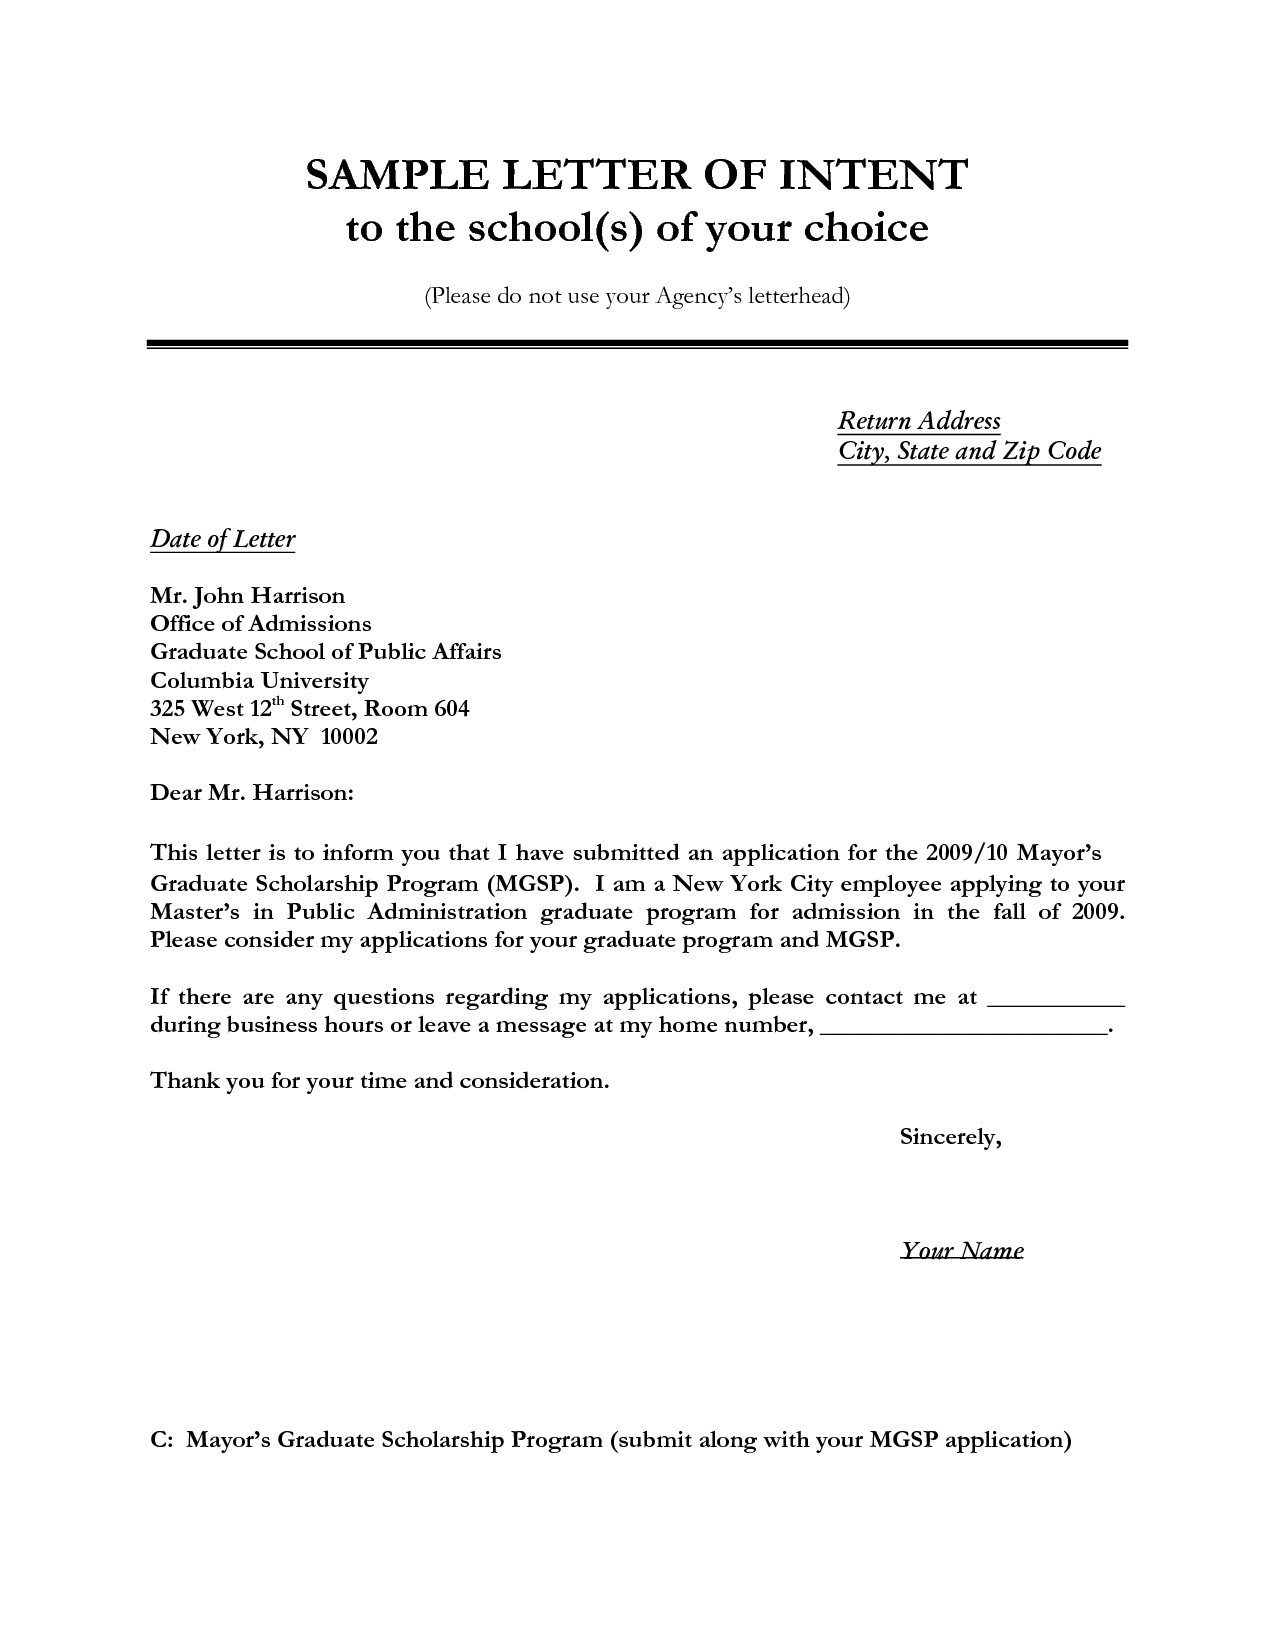 real estate letter of intent template example-Letter of intent sample 5-q